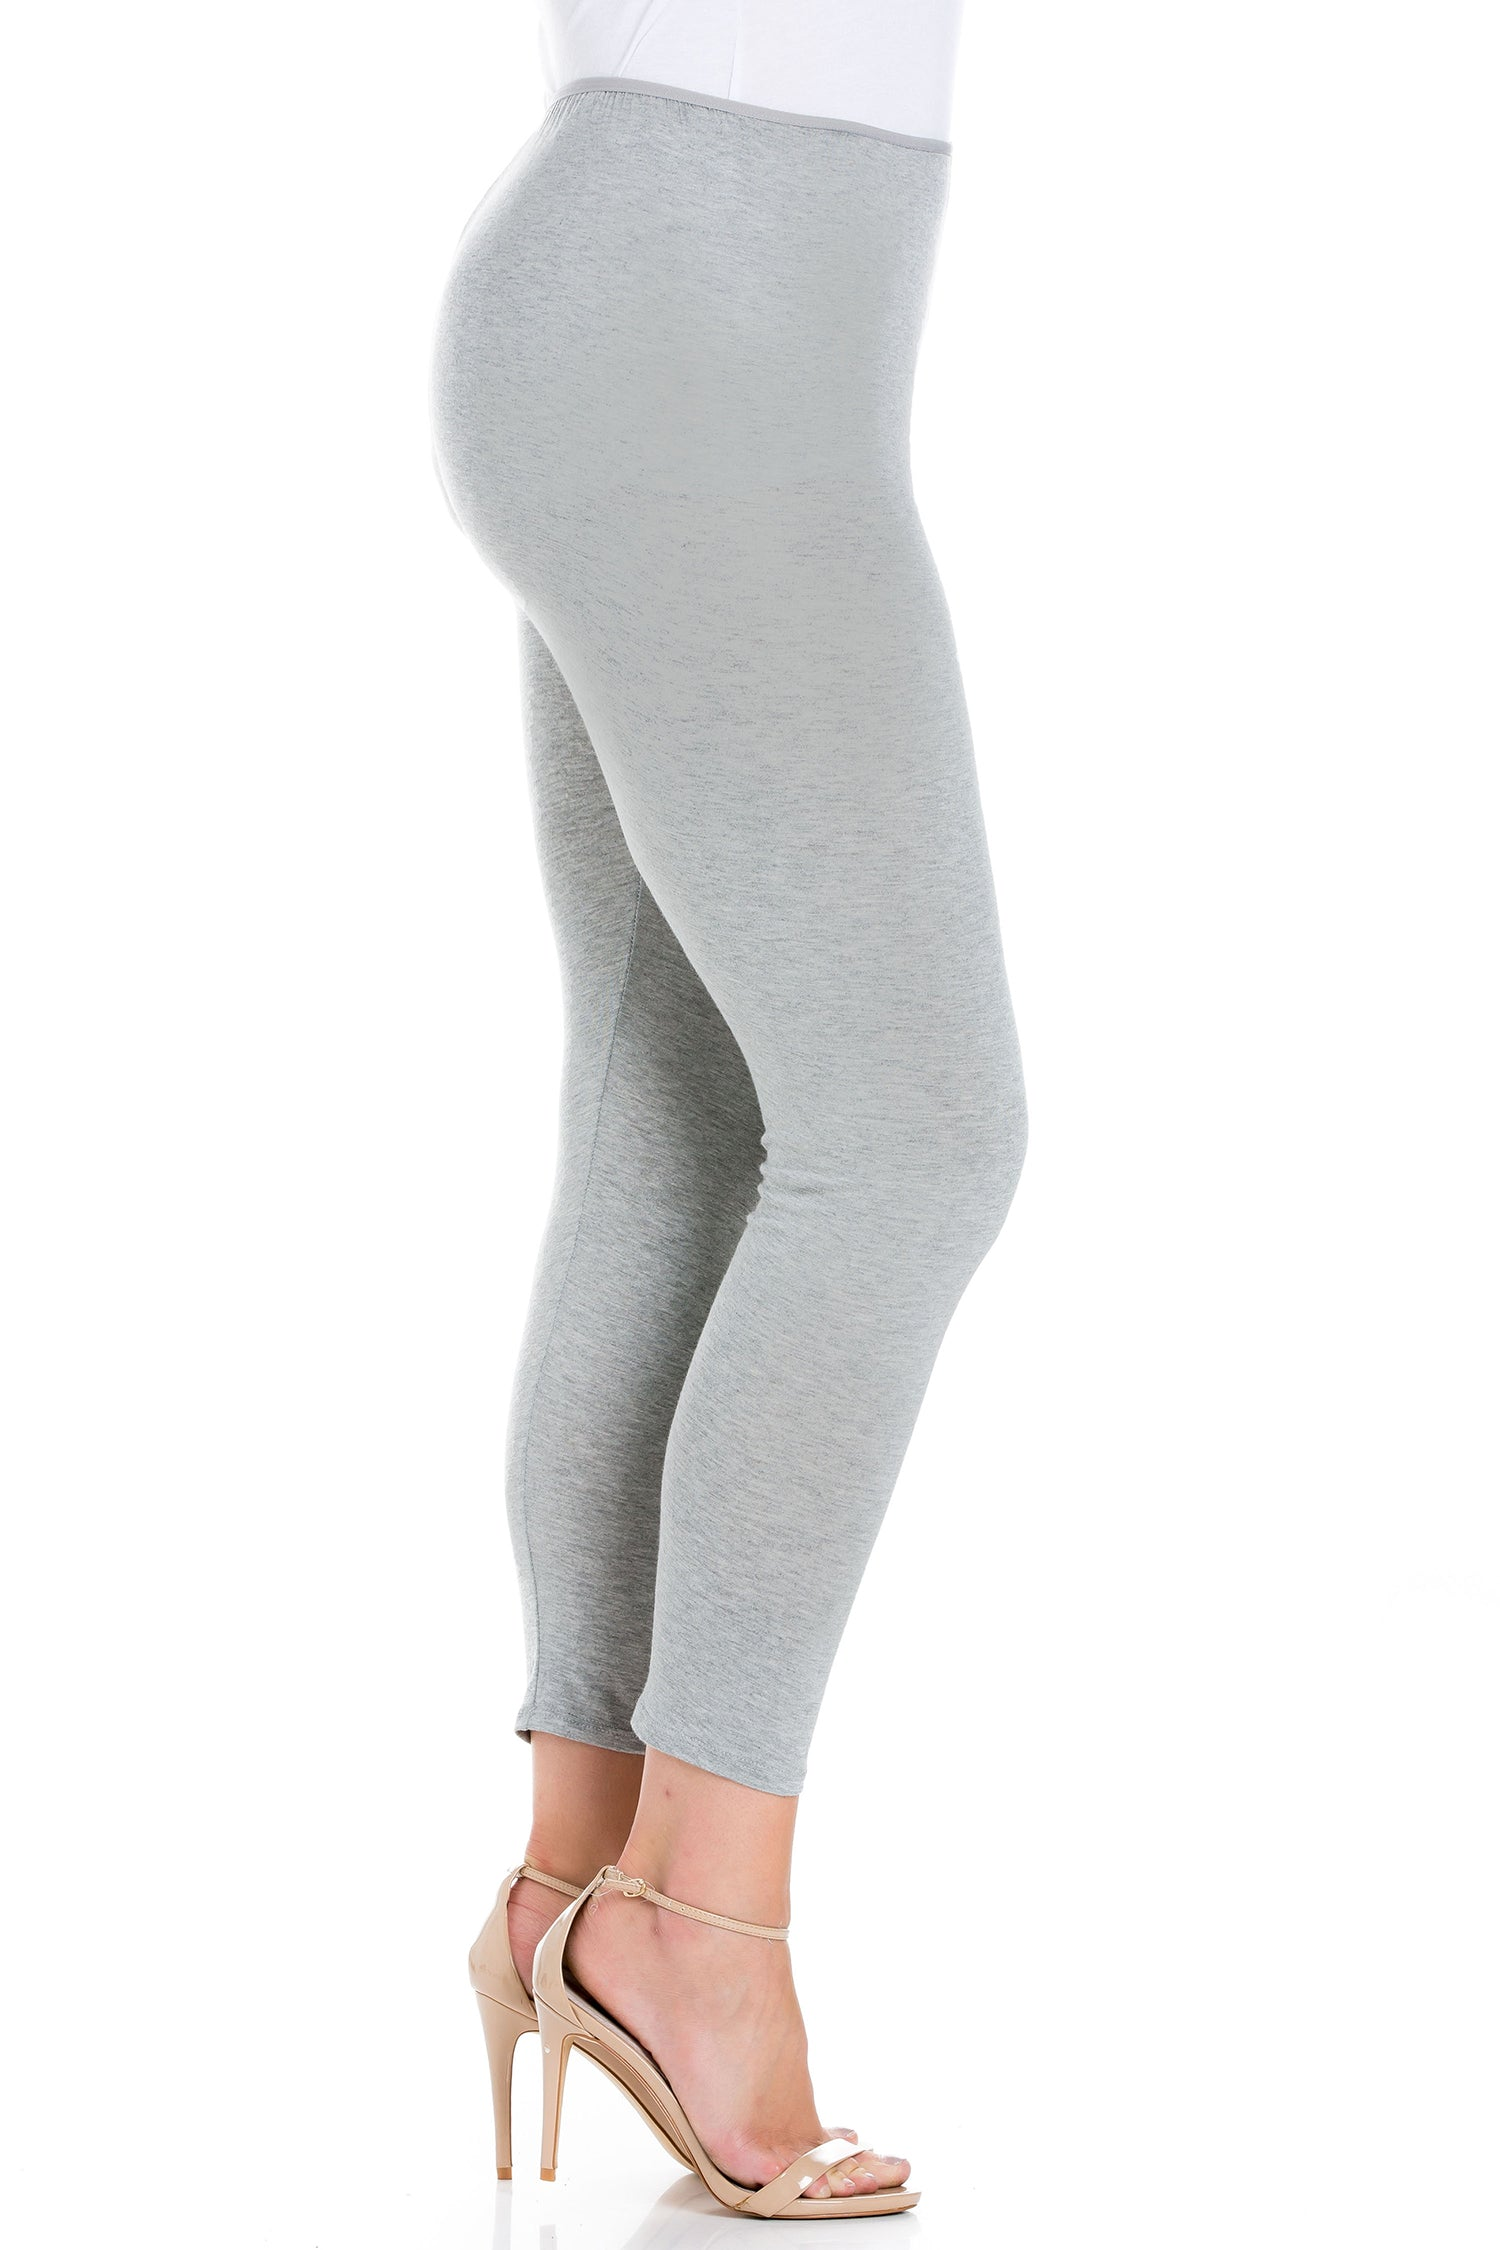 24seven Comfort Apparel Comfortable Ankle Length Plus Size Leggings-PANT-24Seven Comfort Apparel-HEATHER-1X-24/7 Comfort Apparel